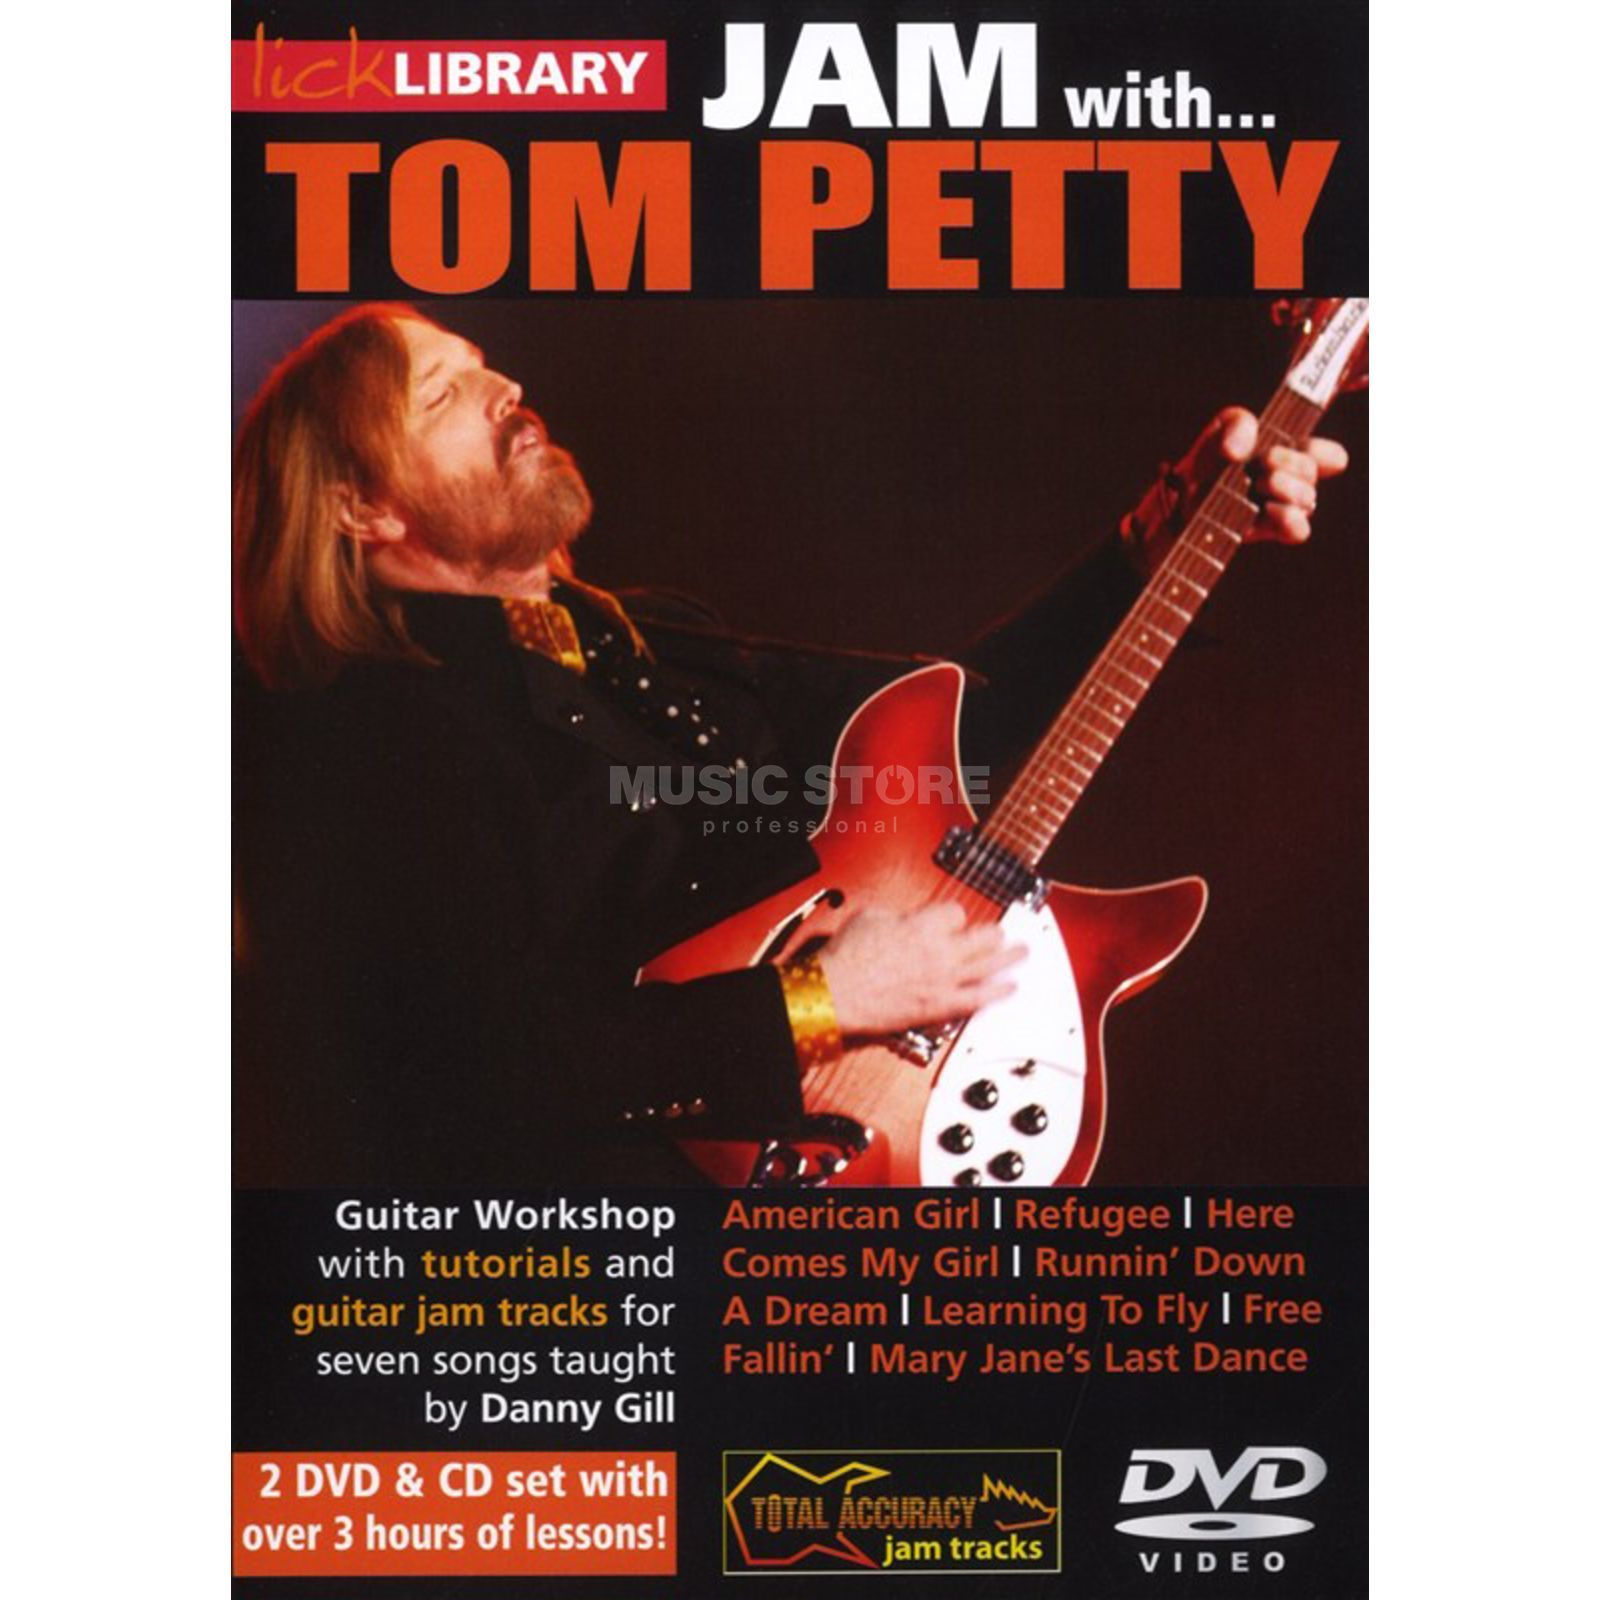 Roadrock International Lick Library: Jam With Tom Petty DVD, CD Produktbillede